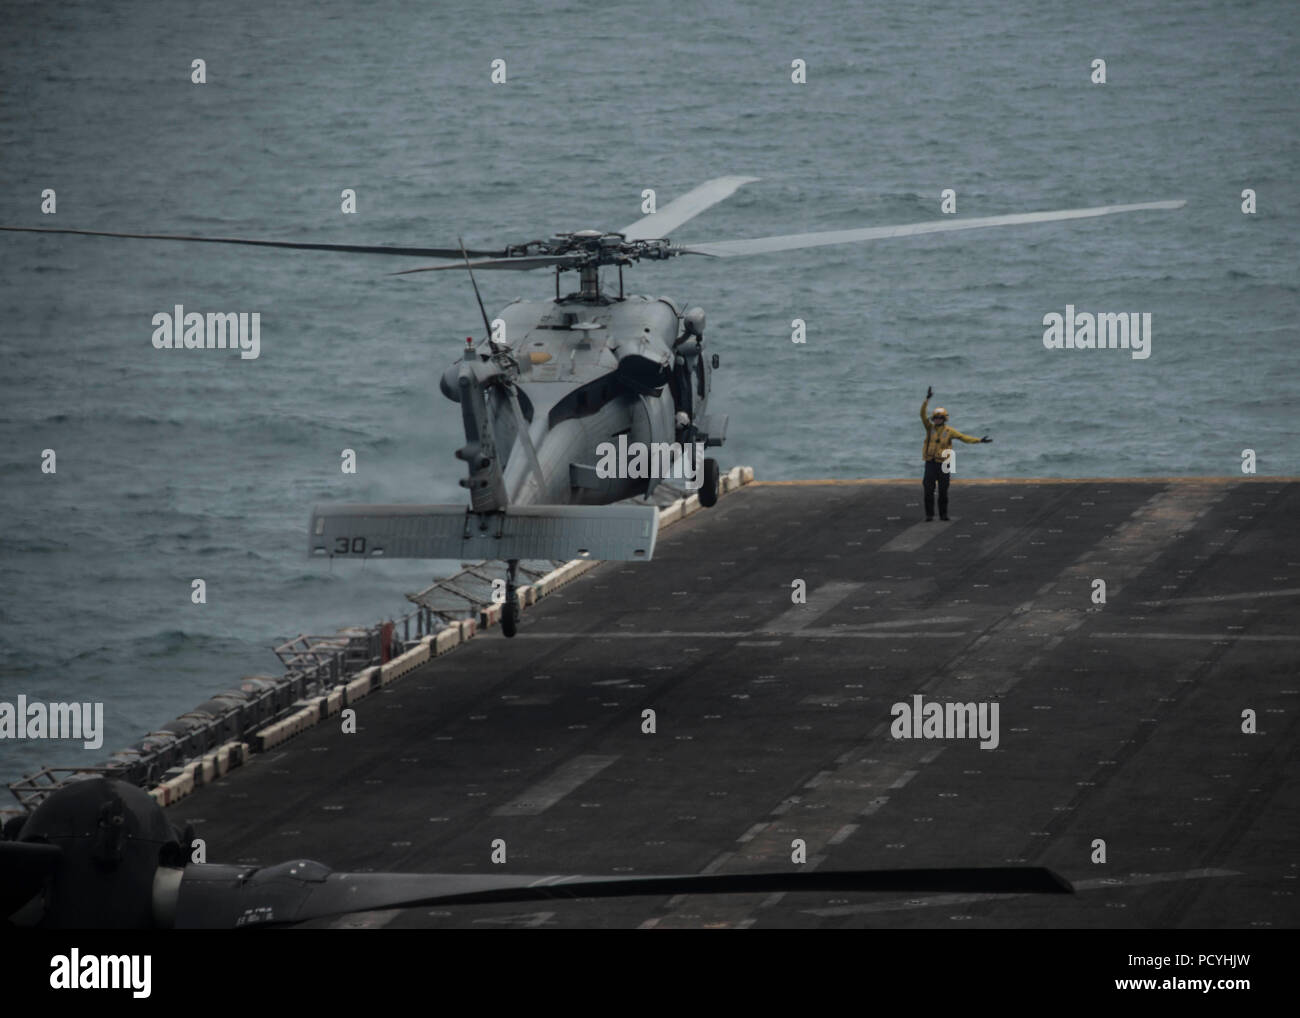 ATLANTIC OCEAN (Aug. 3, 2018) An MH-60S Sea Hawk, attached to Helicopter Sea Combat Squadron (HSC) 28, prepares to land on the flight deck of the Wasp-class amphibious assault ship USS Iwo Jima (LHD 7), Aug. 3, 2018. Iwo Jima is deployed with its amphibious ready group in support of maritime security operations and theatre security cooperation efforts in Europe and the Middle East. (U.S. Navy photo by Mass Communication Specialist 3rd Class Dominick A. Cremeans/Released) Stock Photo